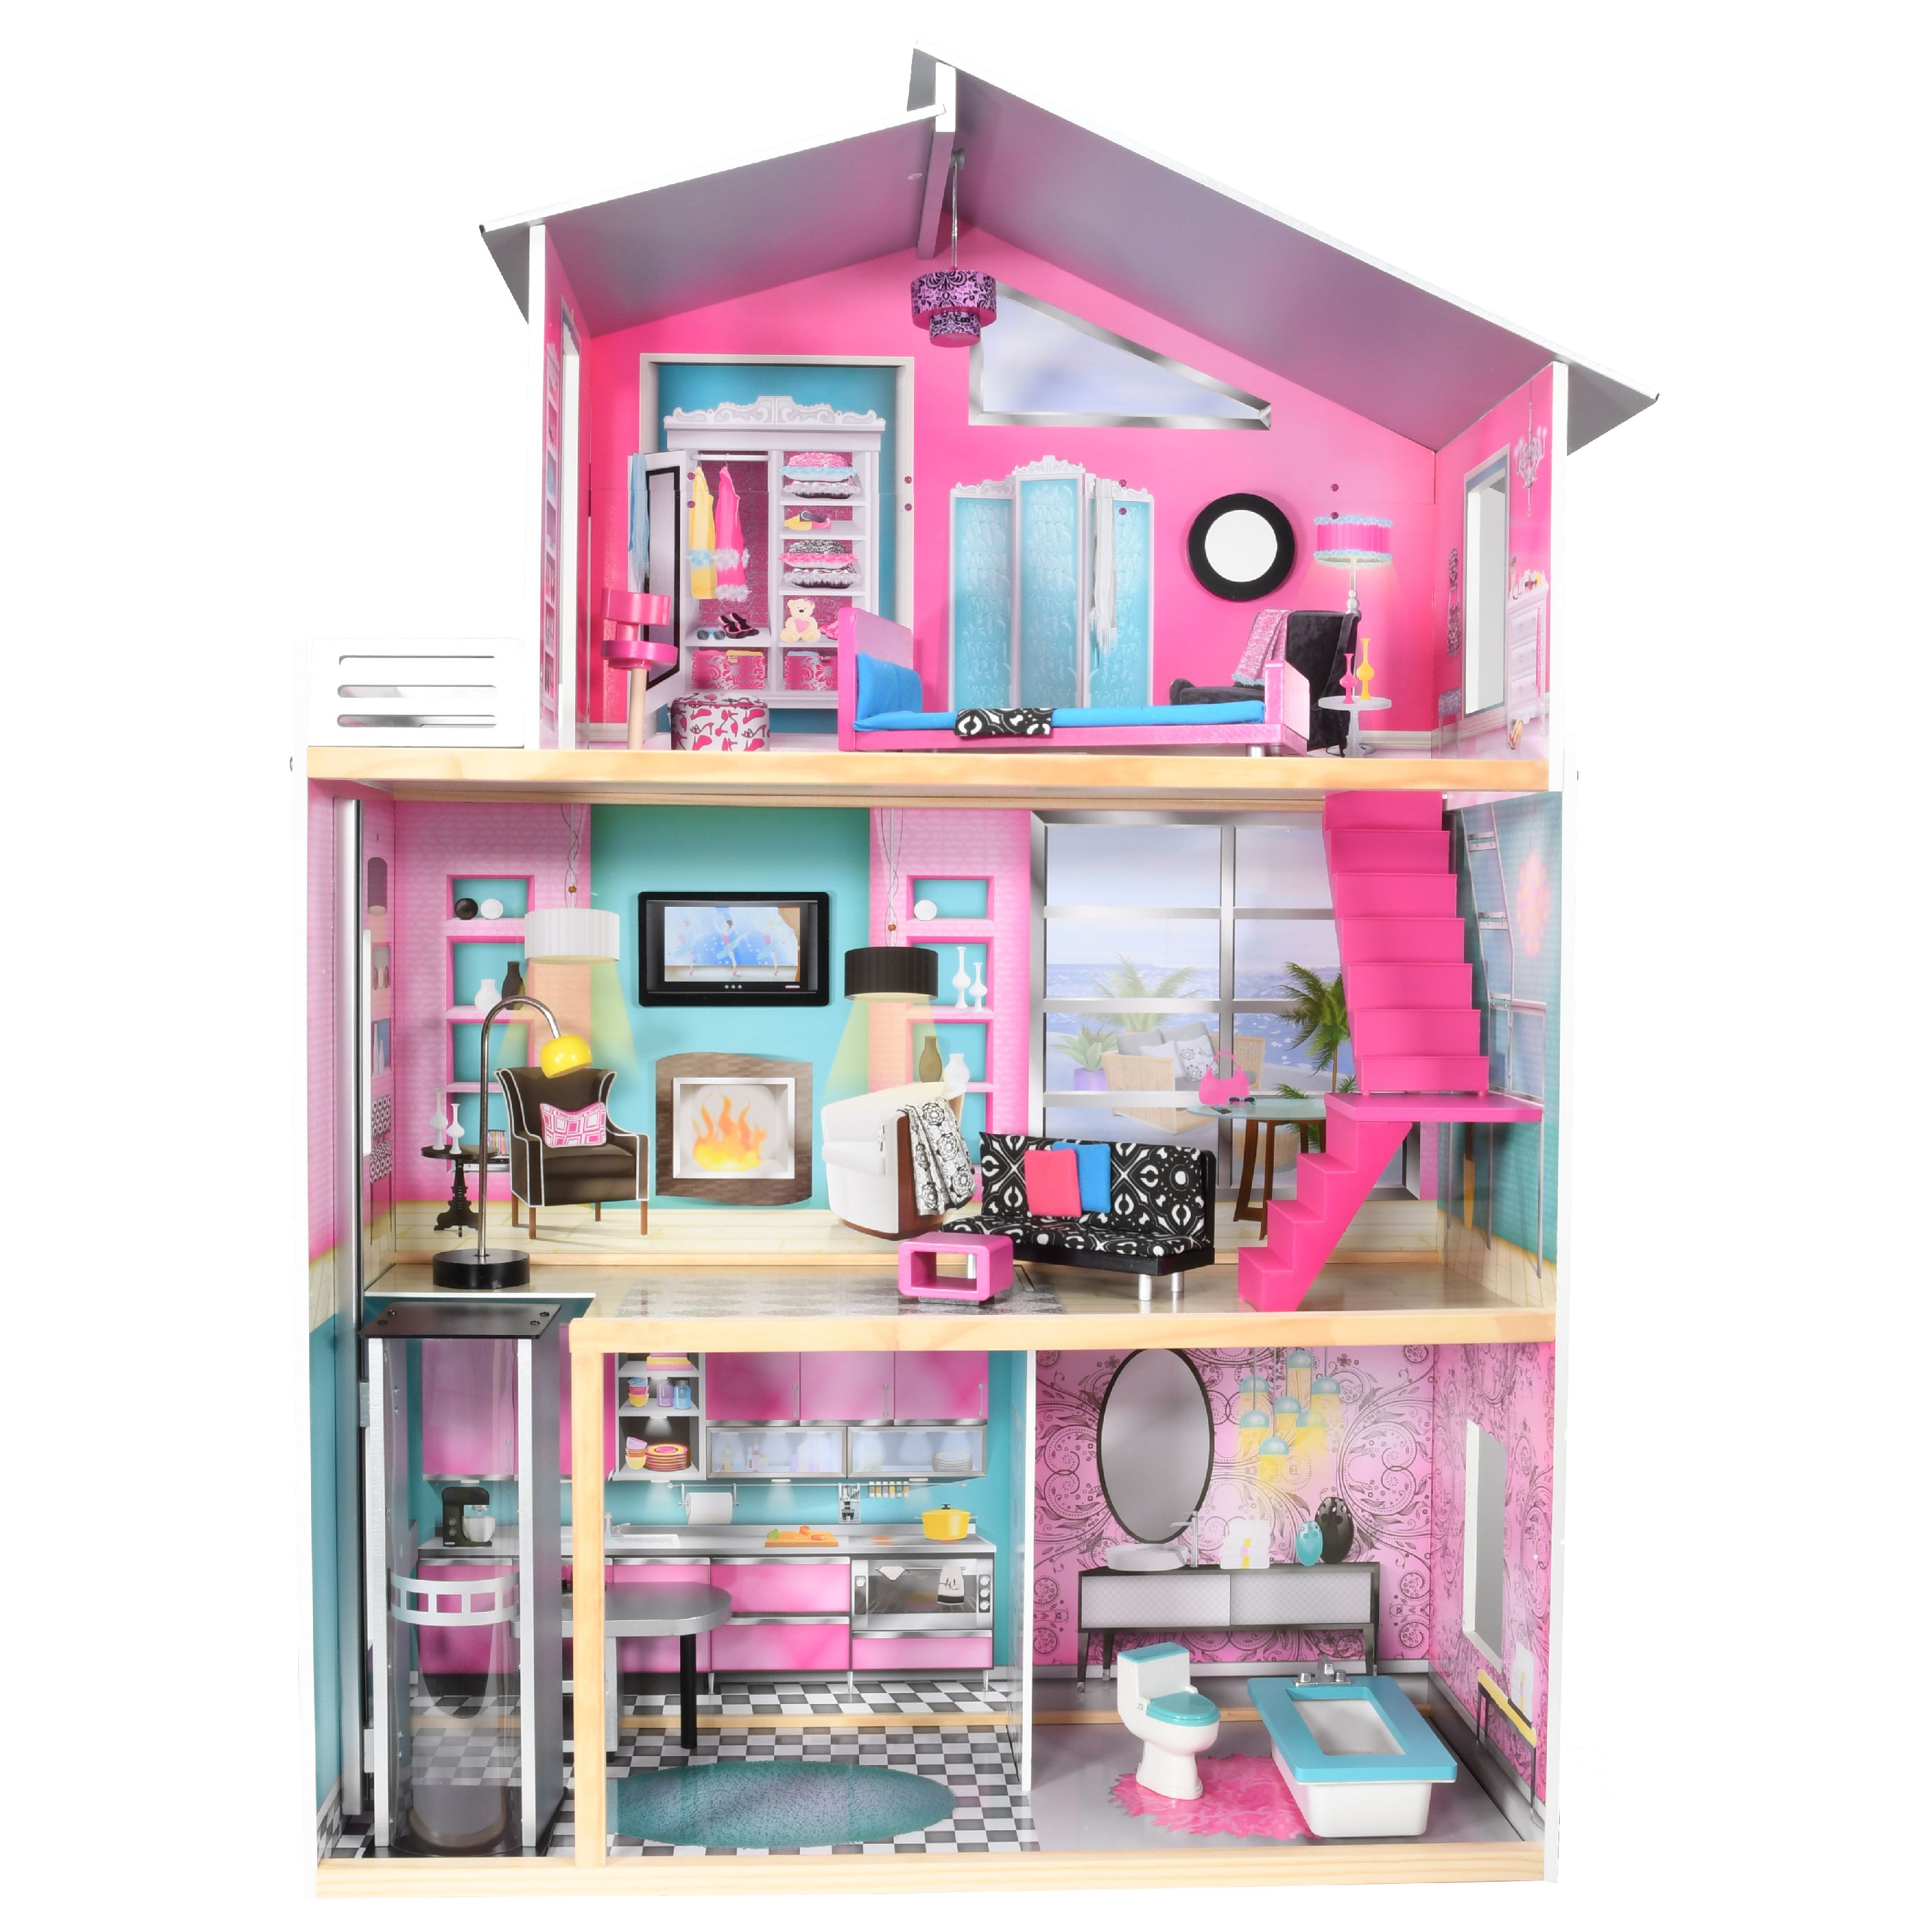 Charming Imaginarium Modern Luxury Dollhouse With 11 Pieces Of Furniture